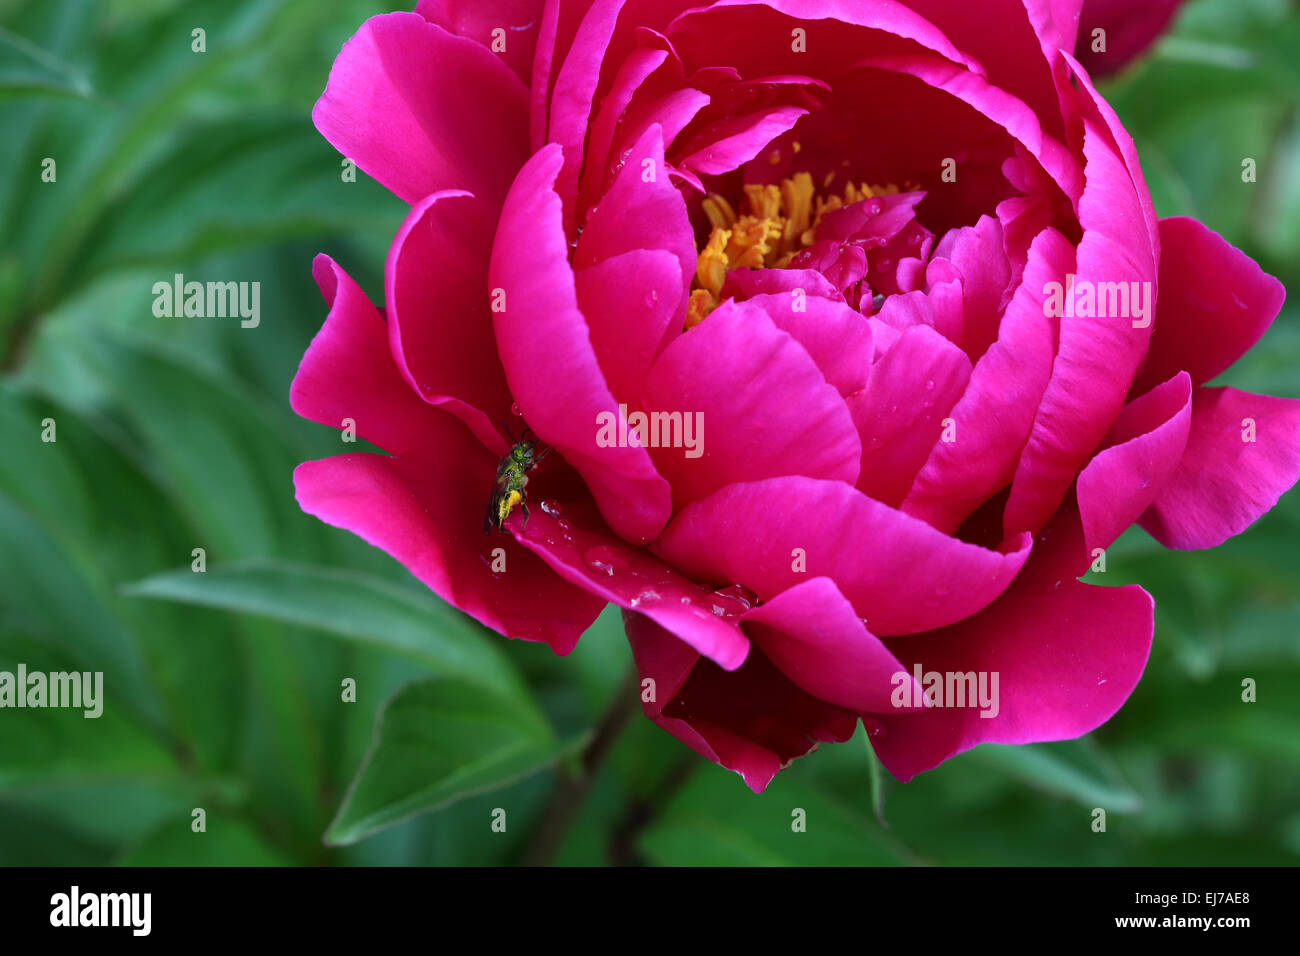 Bright Pink Peony Flower With Small Green Bug On A Petal Stock Photo